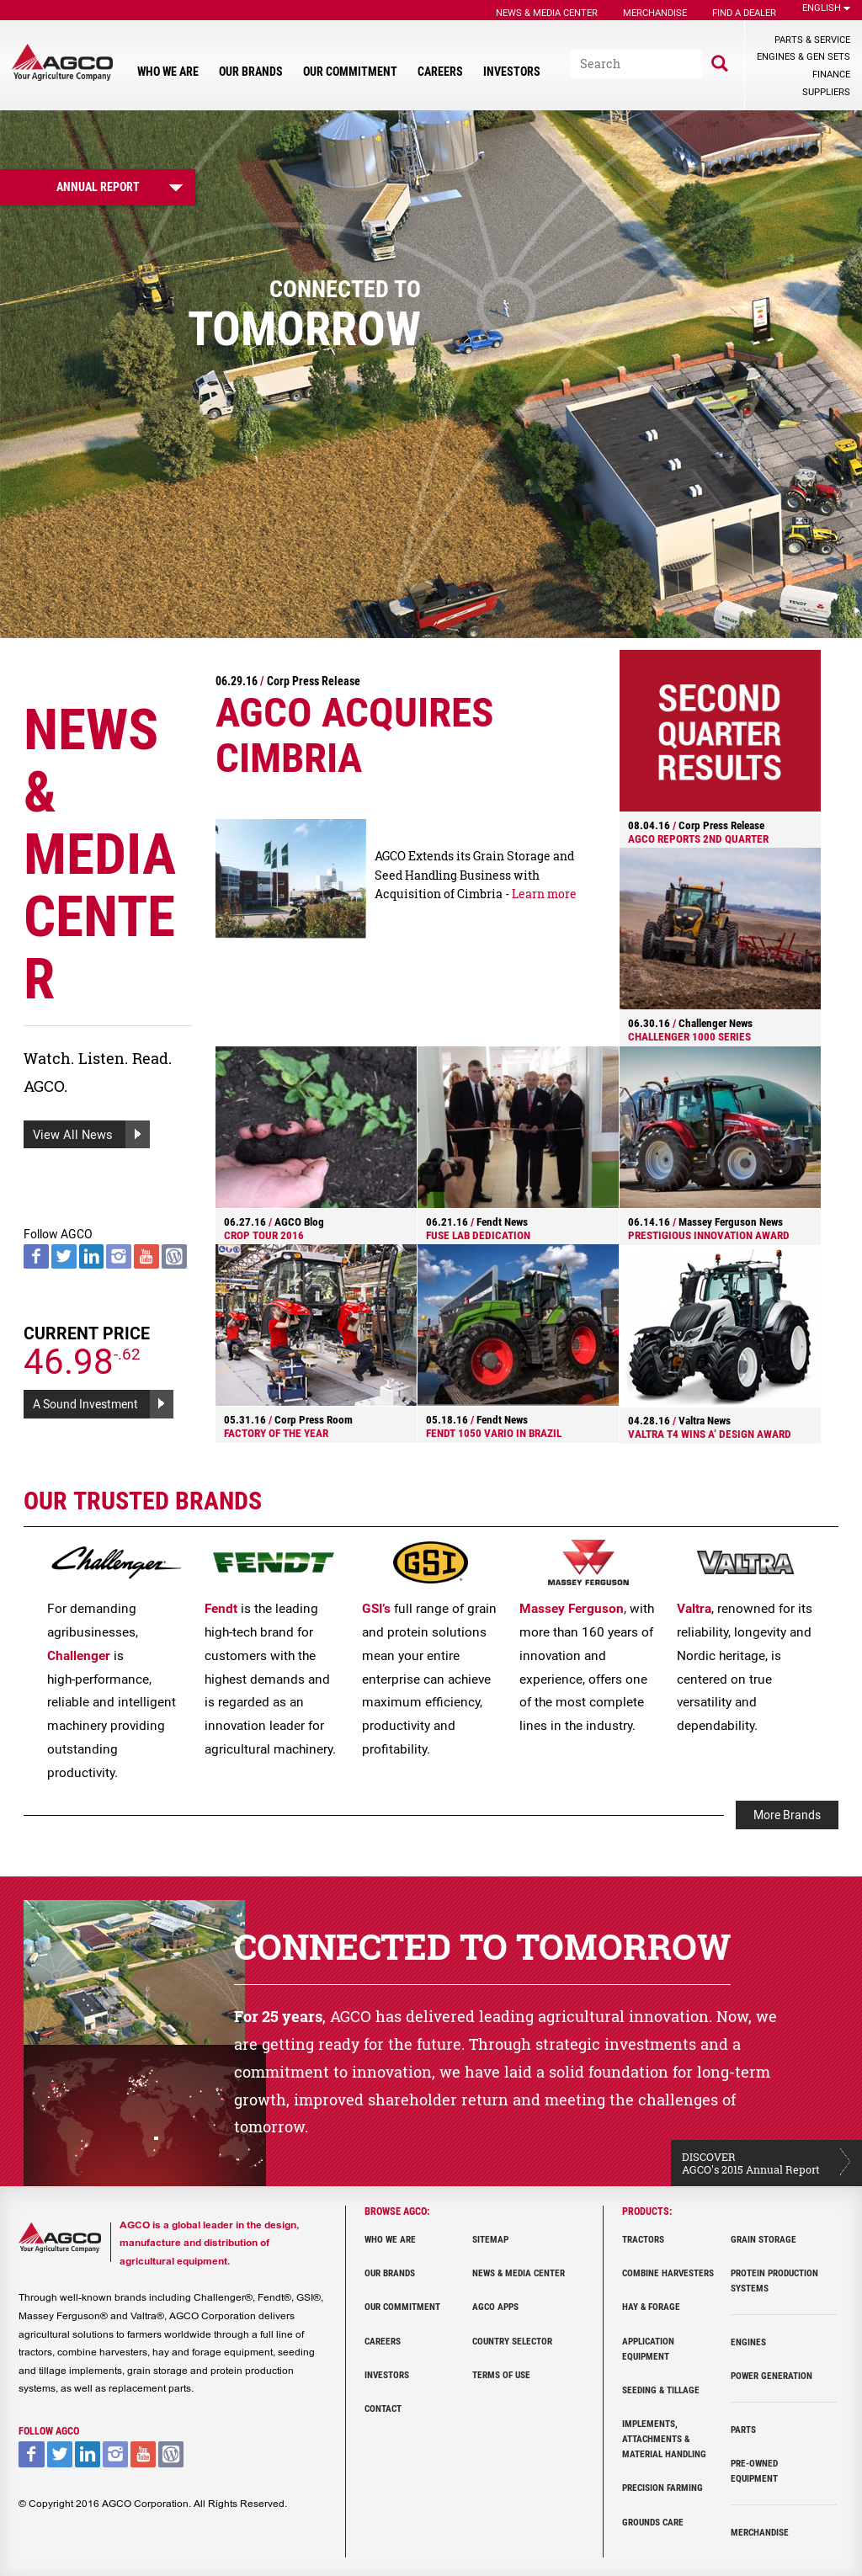 AGCO Competitors, Revenue and Employees - Owler Company Profile